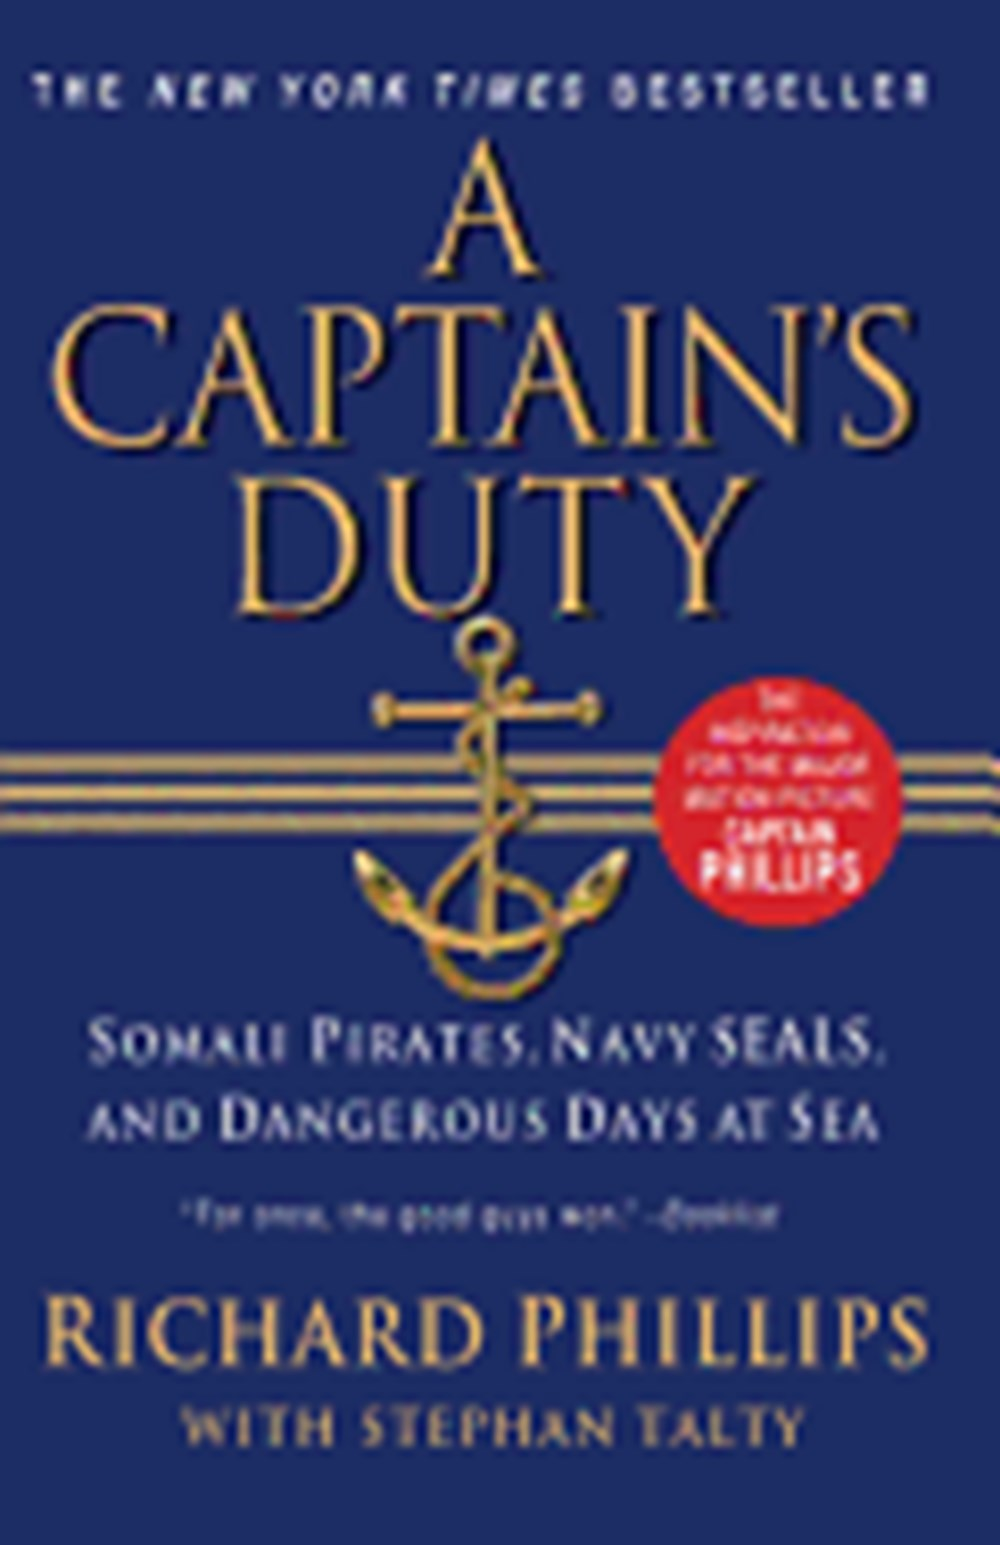 Captain's Duty Somali Pirates, Navy SEALs, and Dangerous Days at Sea